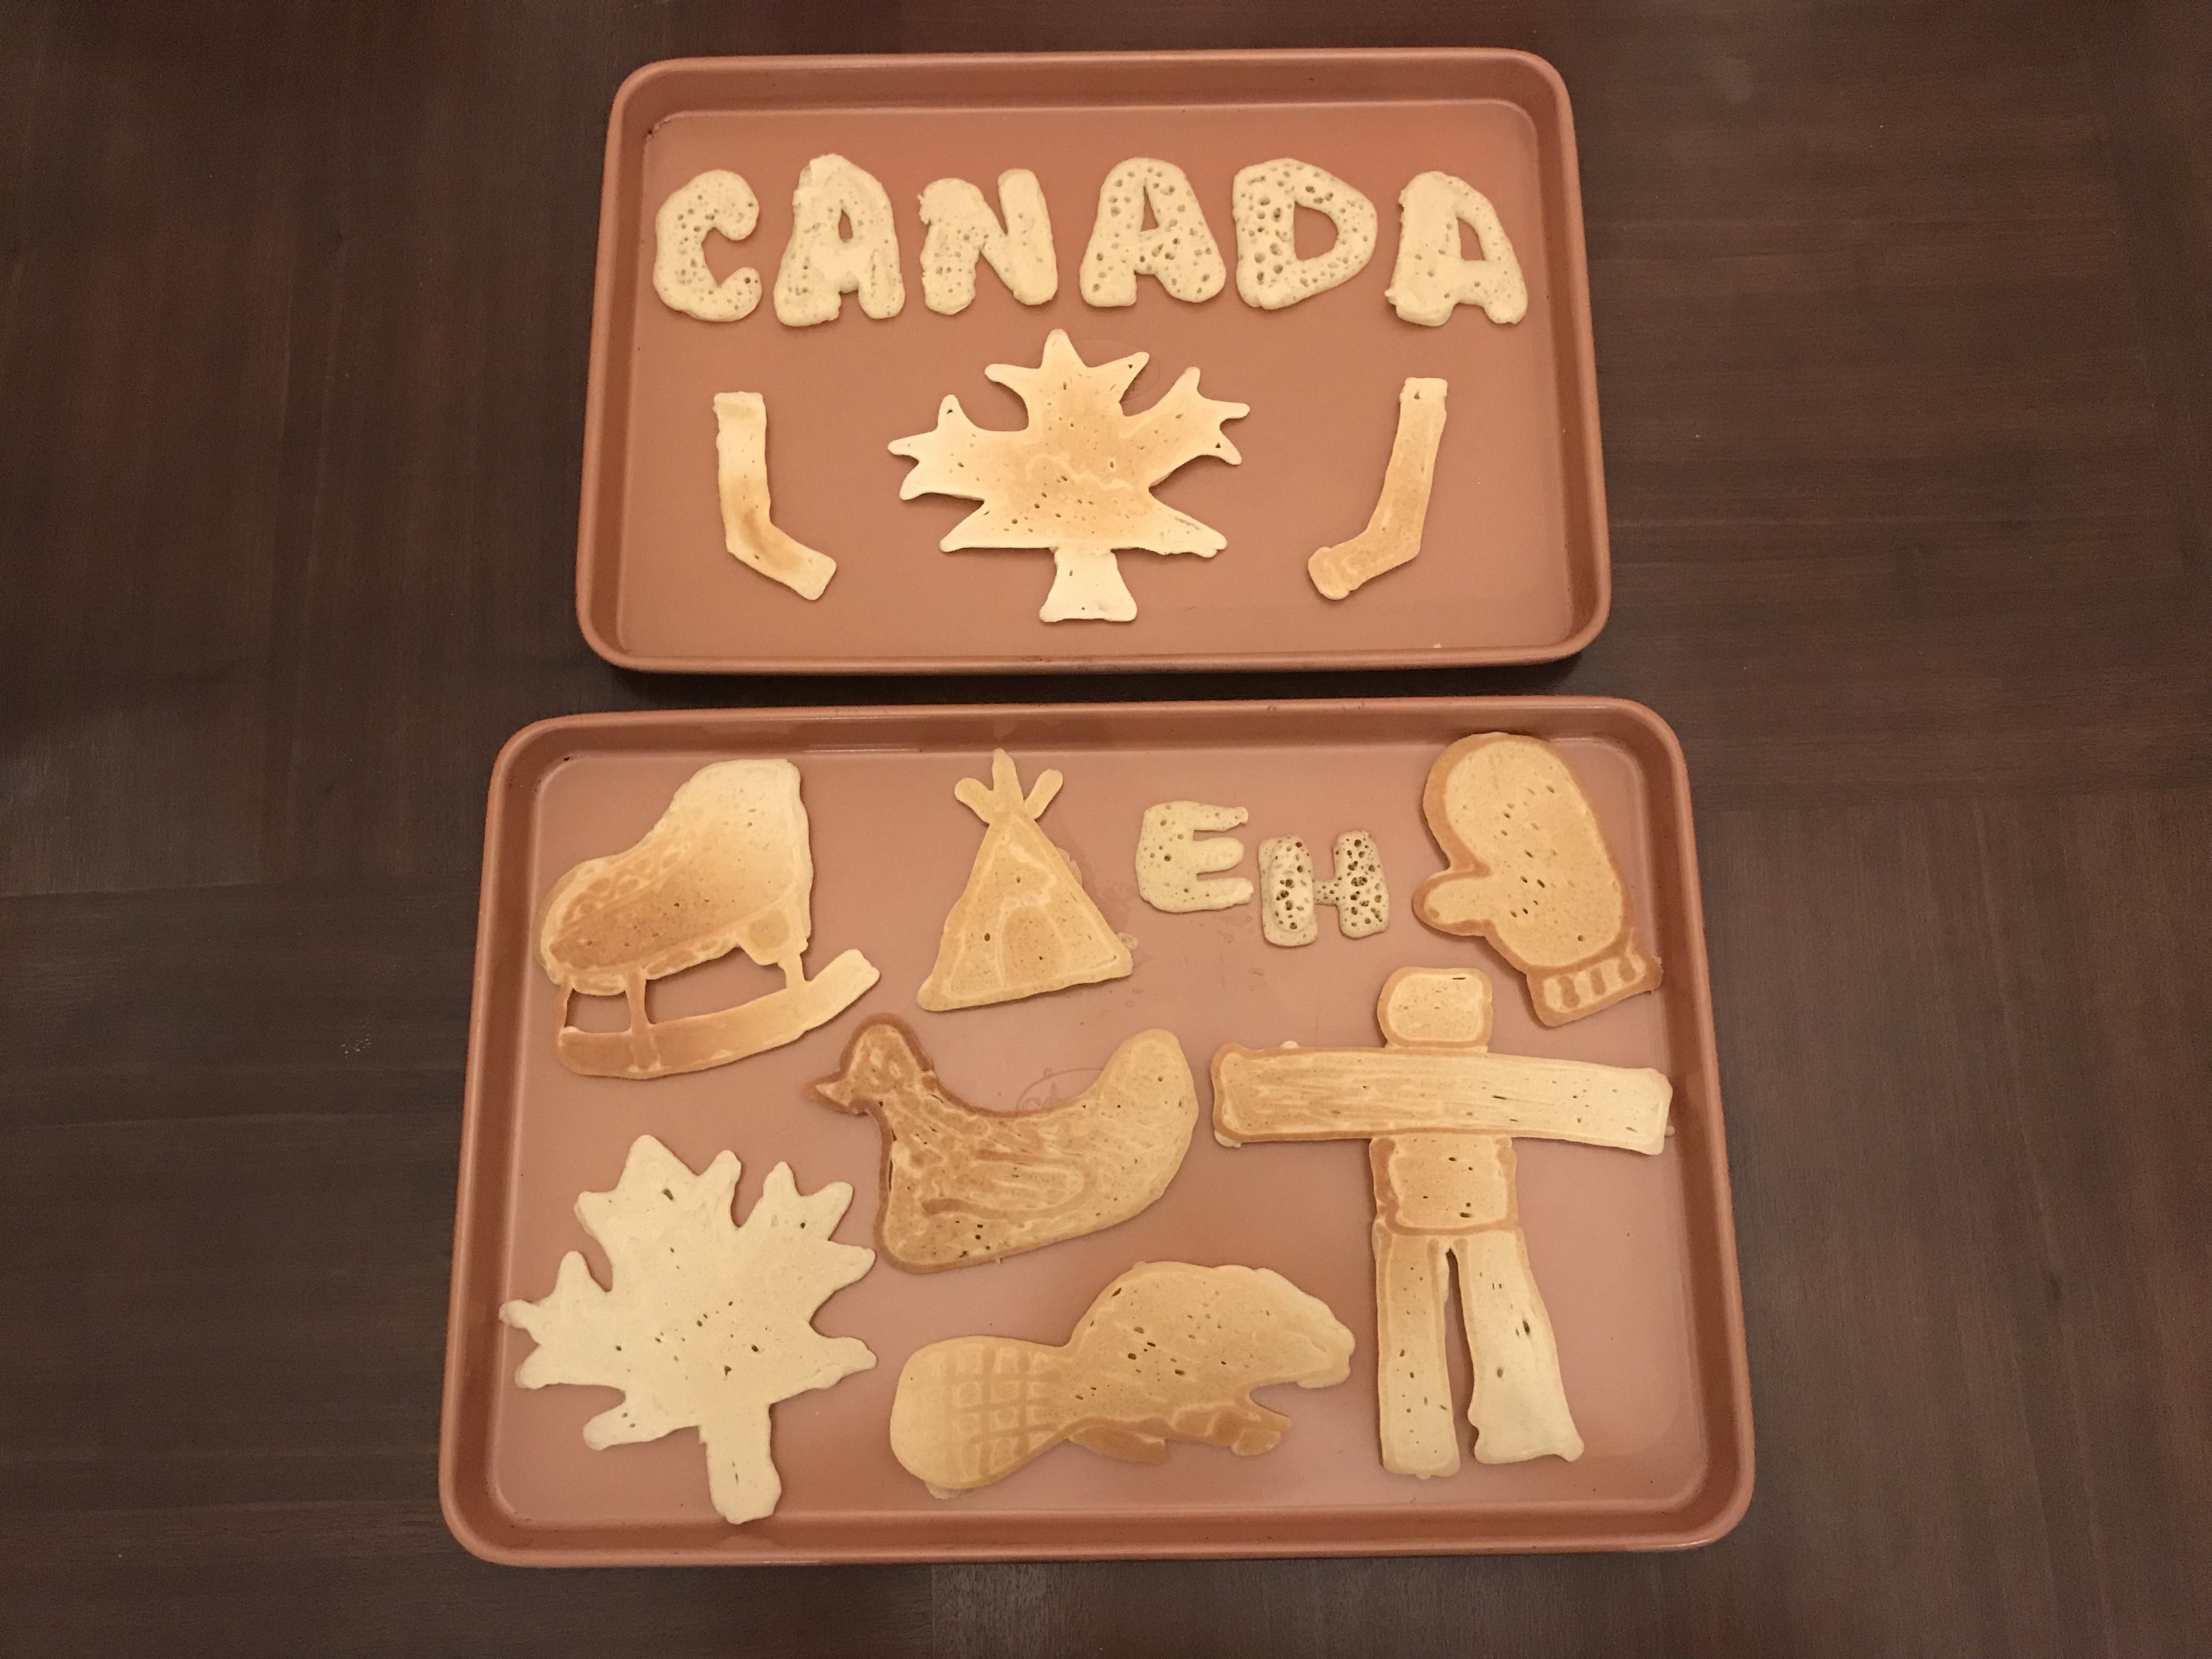 Canada Letter and Symbols.JPG